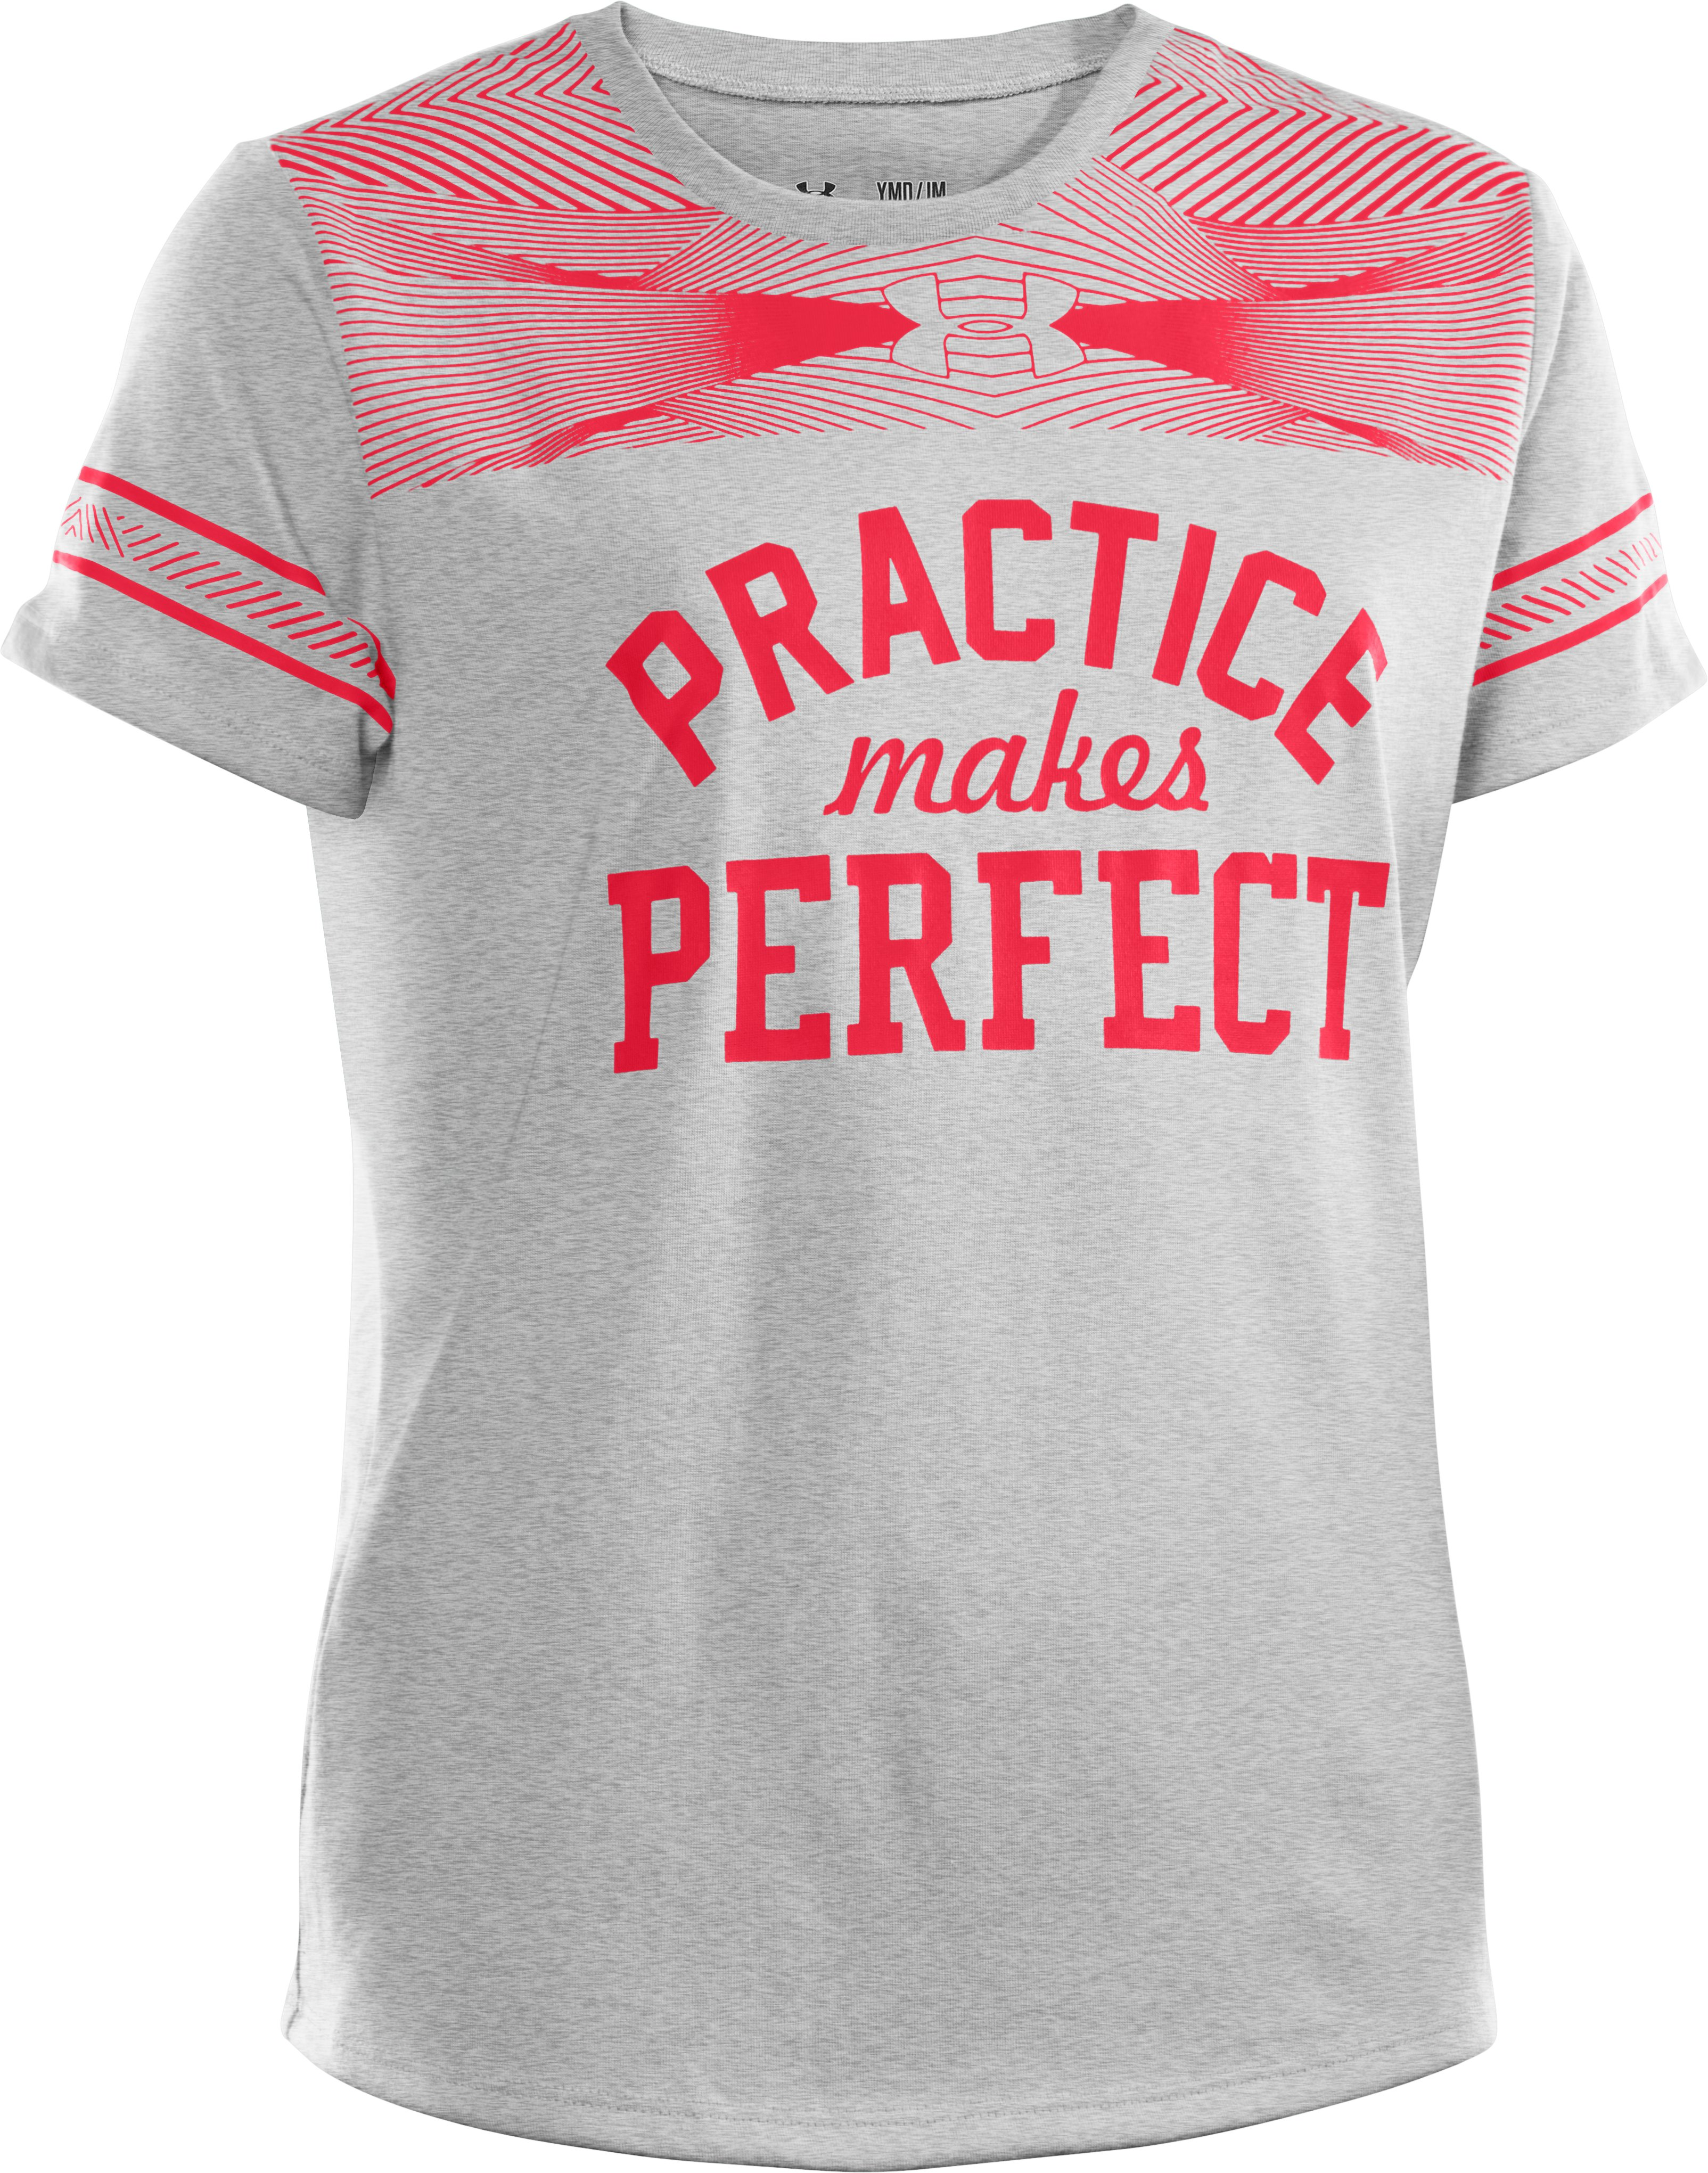 Girls' UA Practice Perfect Graphic T-Shirt, Silver Heather